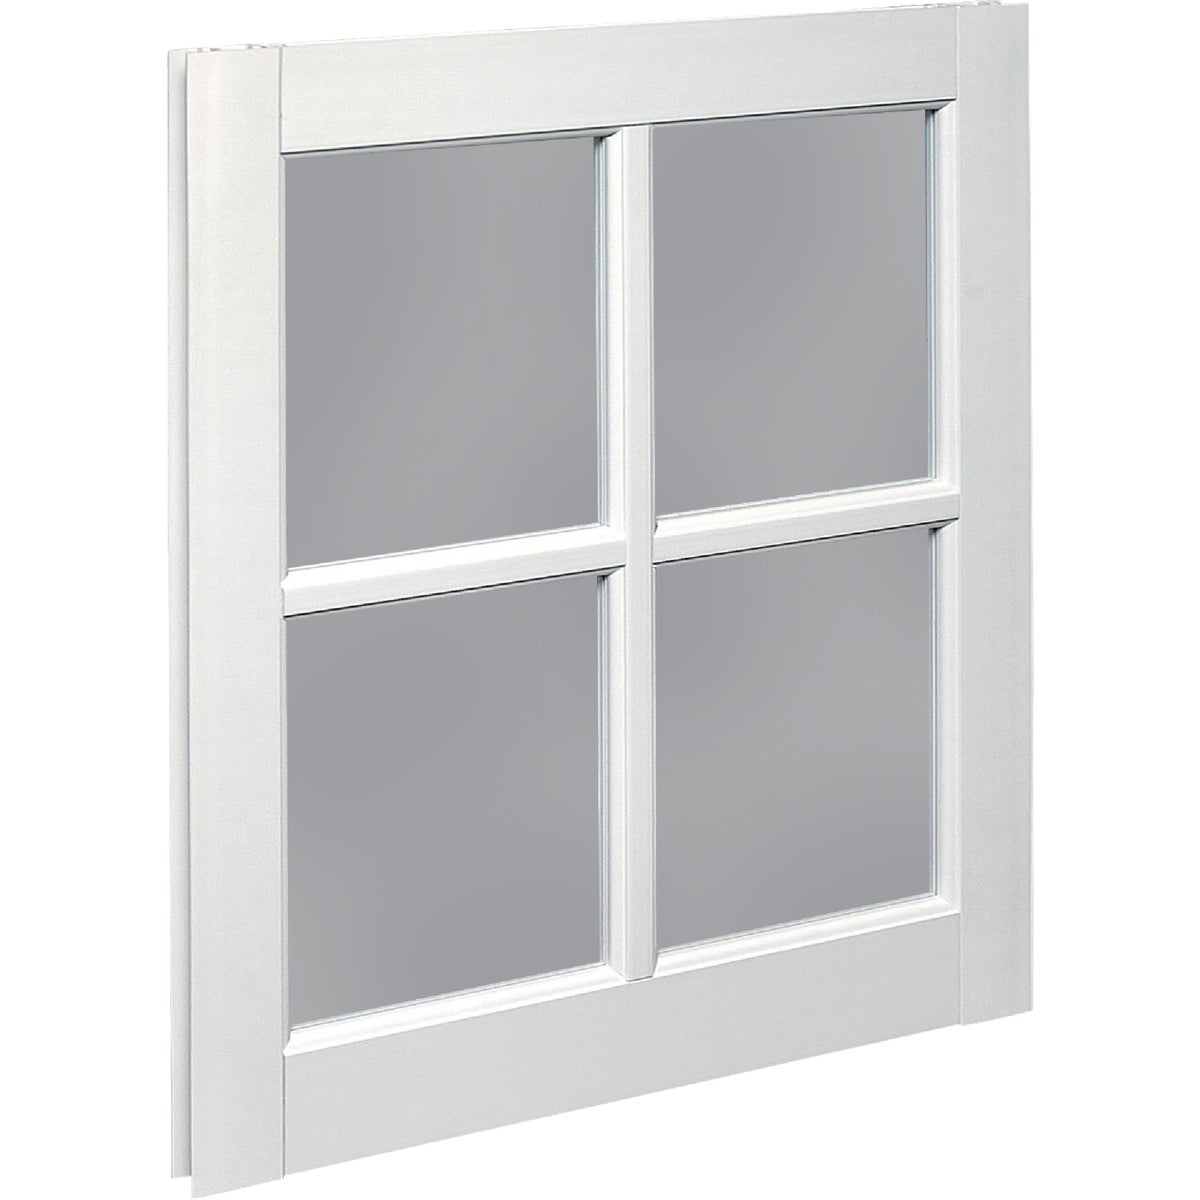 22X29 WHT PVC BARN SASH - BS2229W by Northview Window